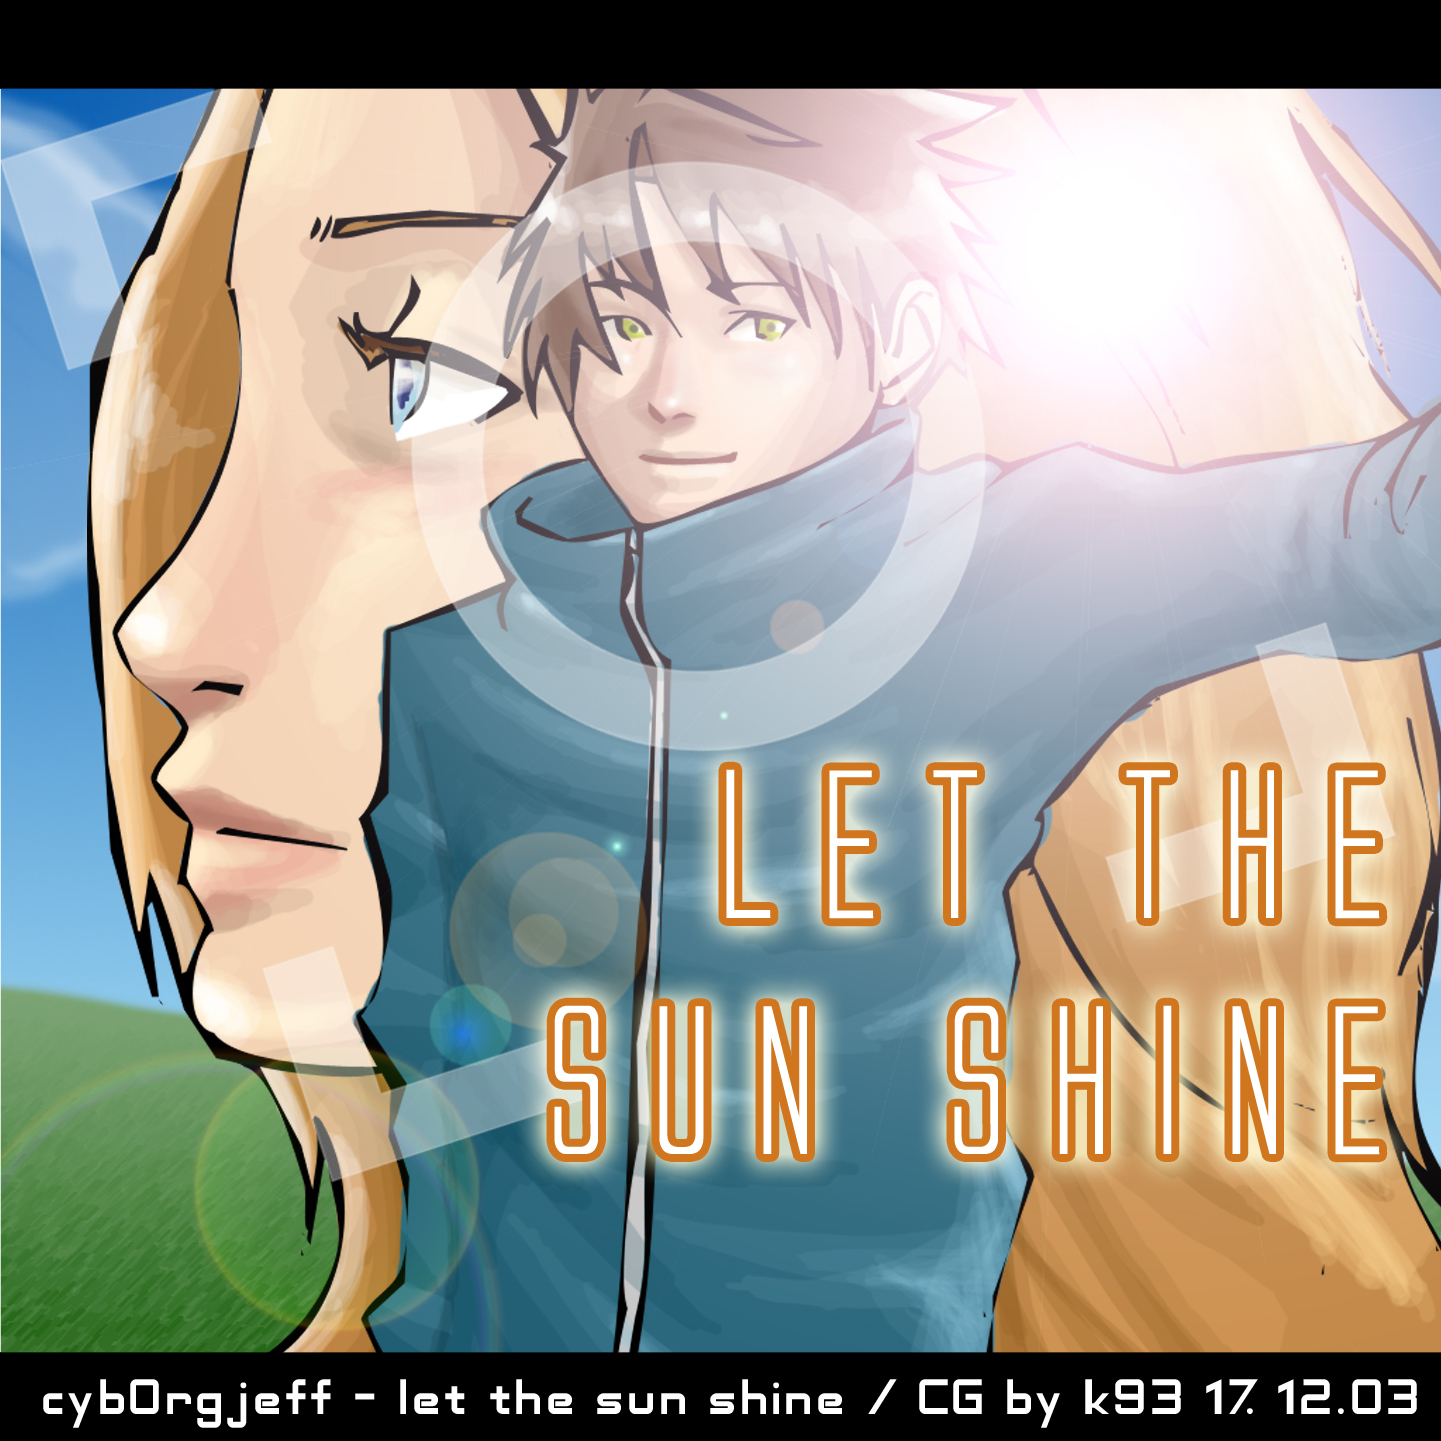 Cyborg Jeff - Album - Let the sun shine - cover - 2003 - K93